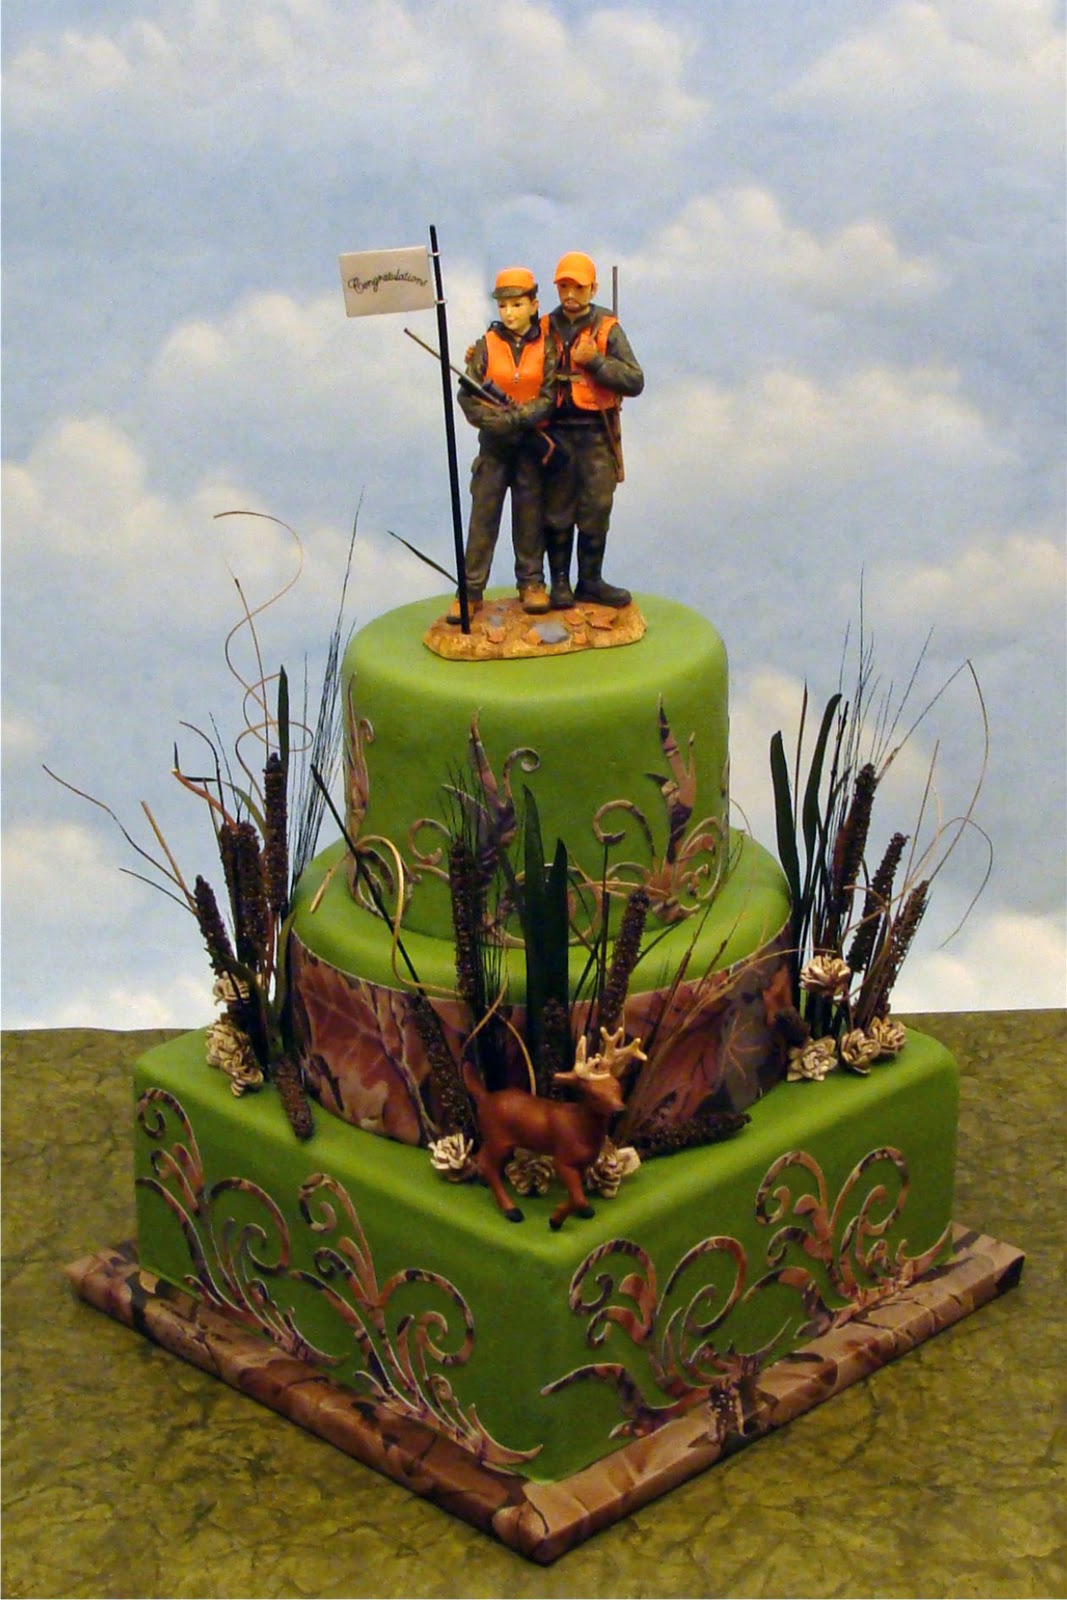 Creative Designs For Cakes: Cake for Hunters